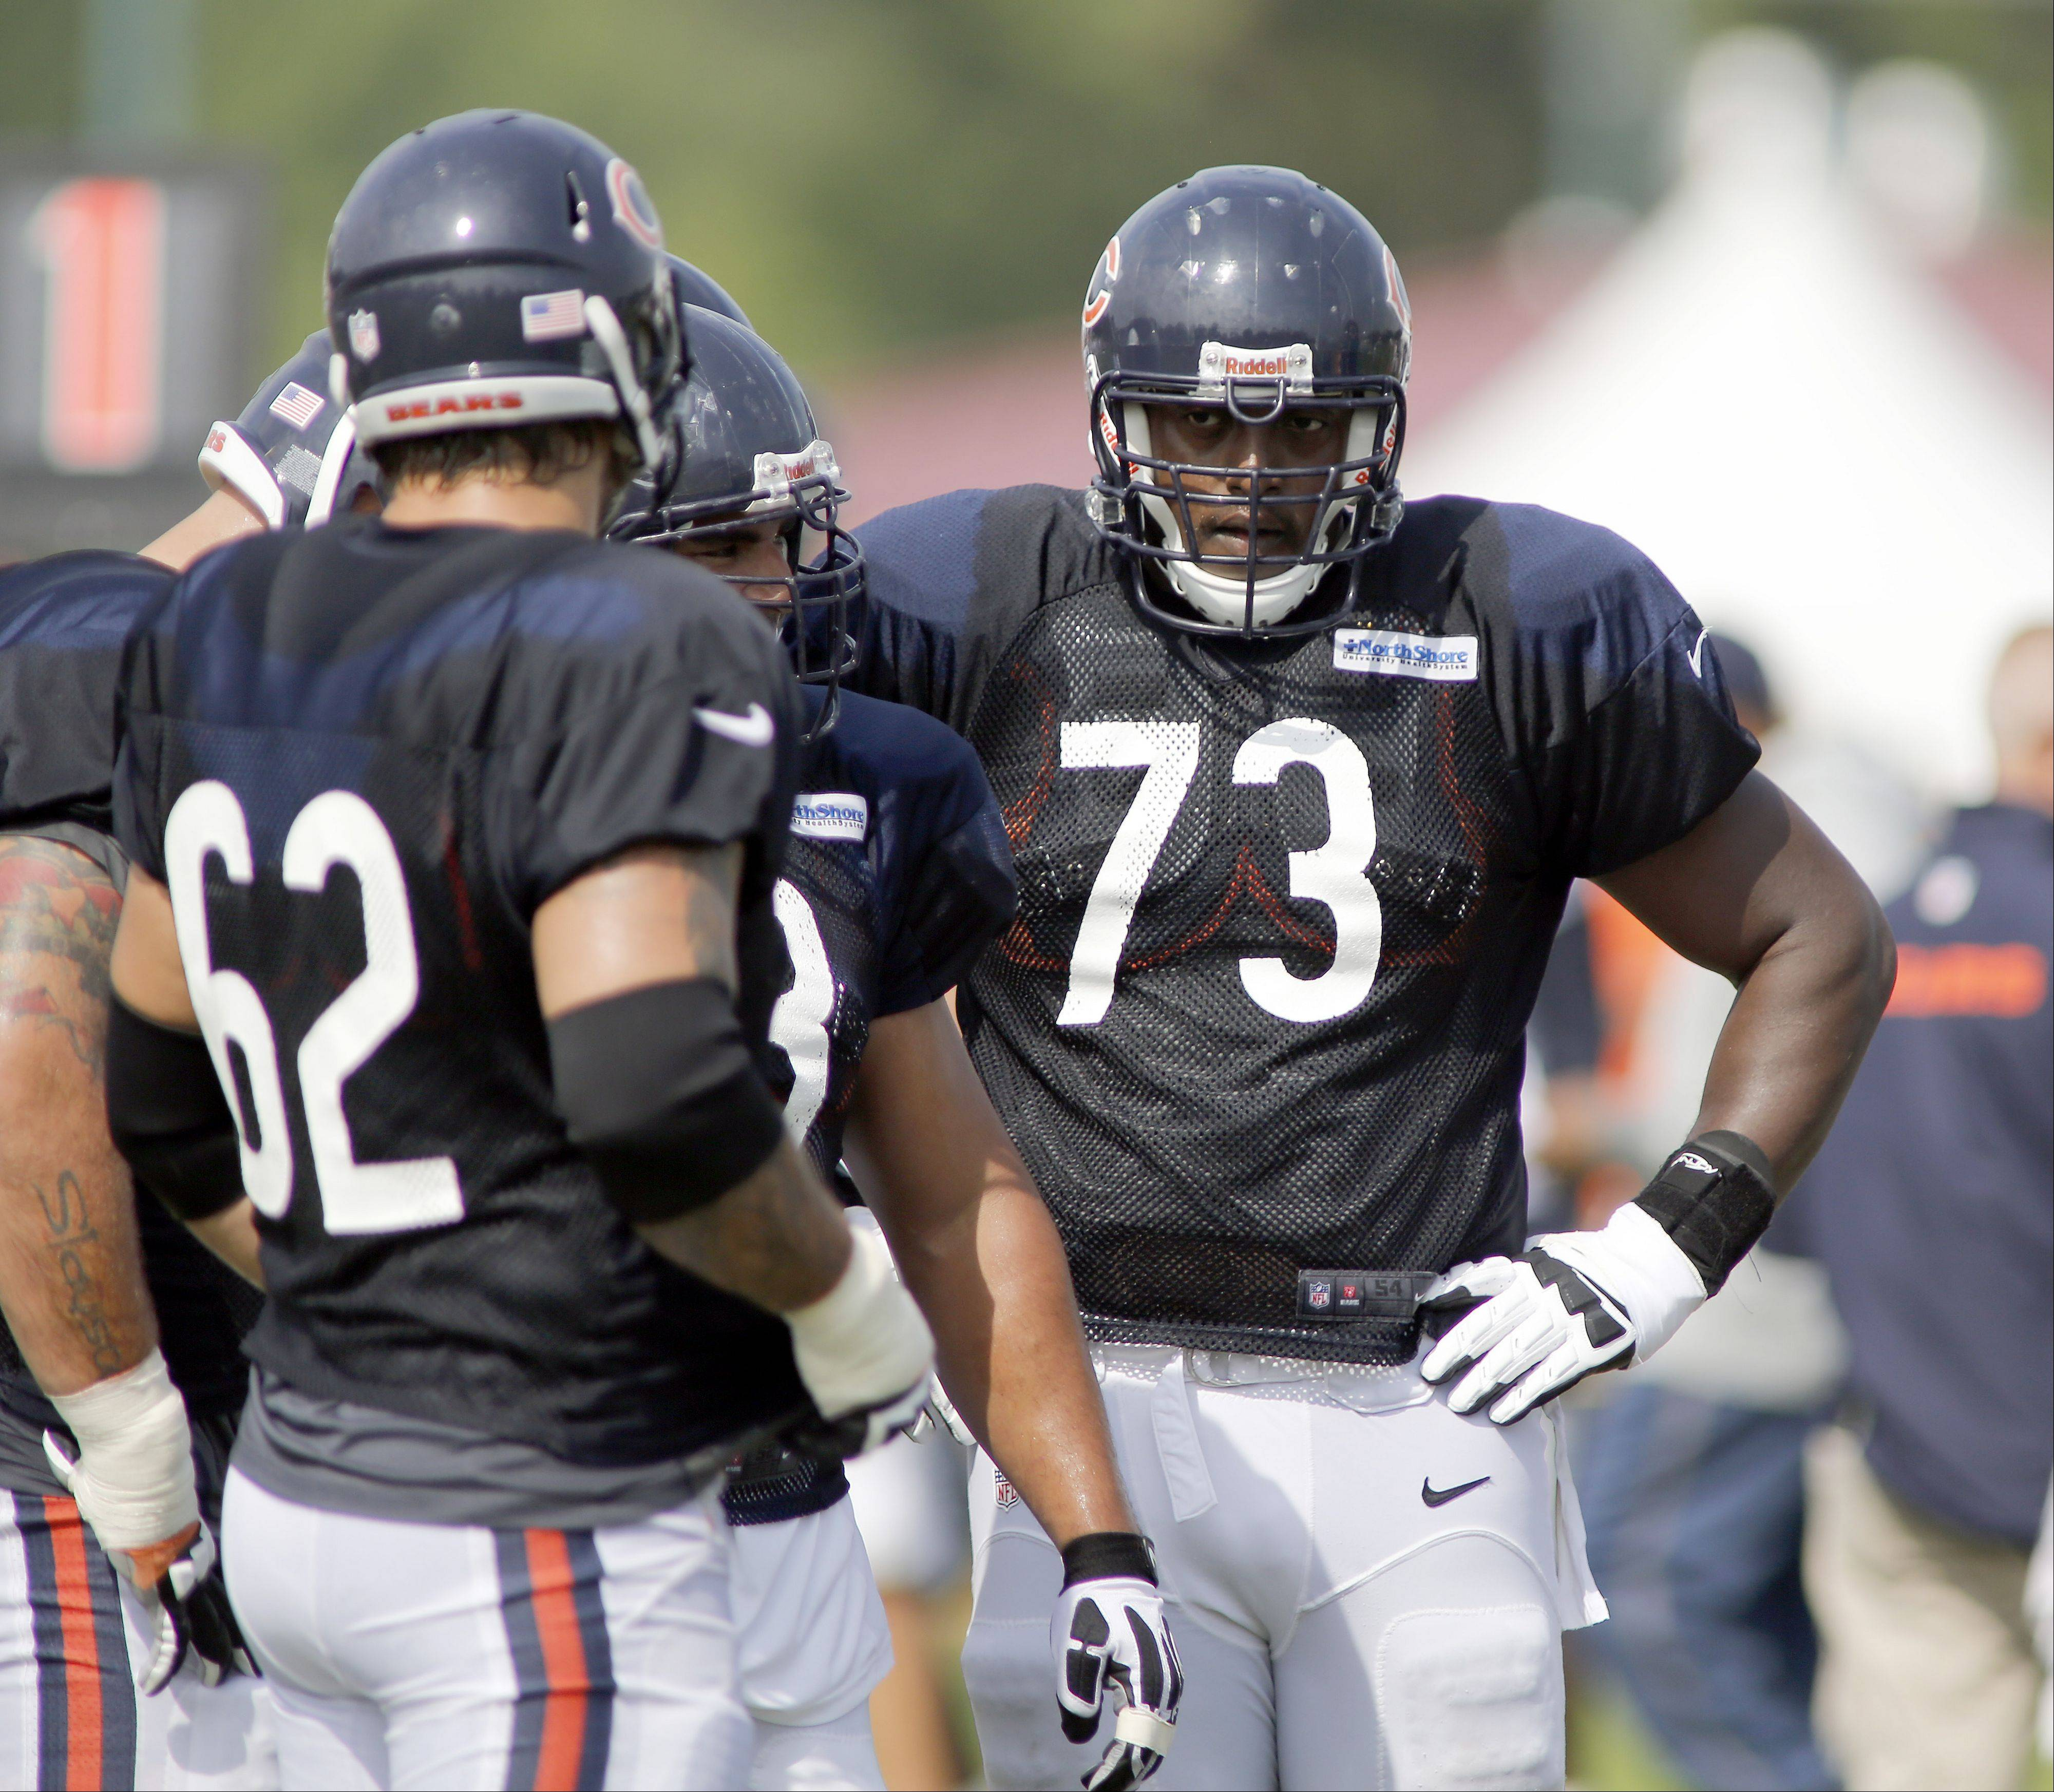 Bears tackle J'Marcus Webb (73) during training camp on the campus of Olivet Nazarene University in Bourbonnais.